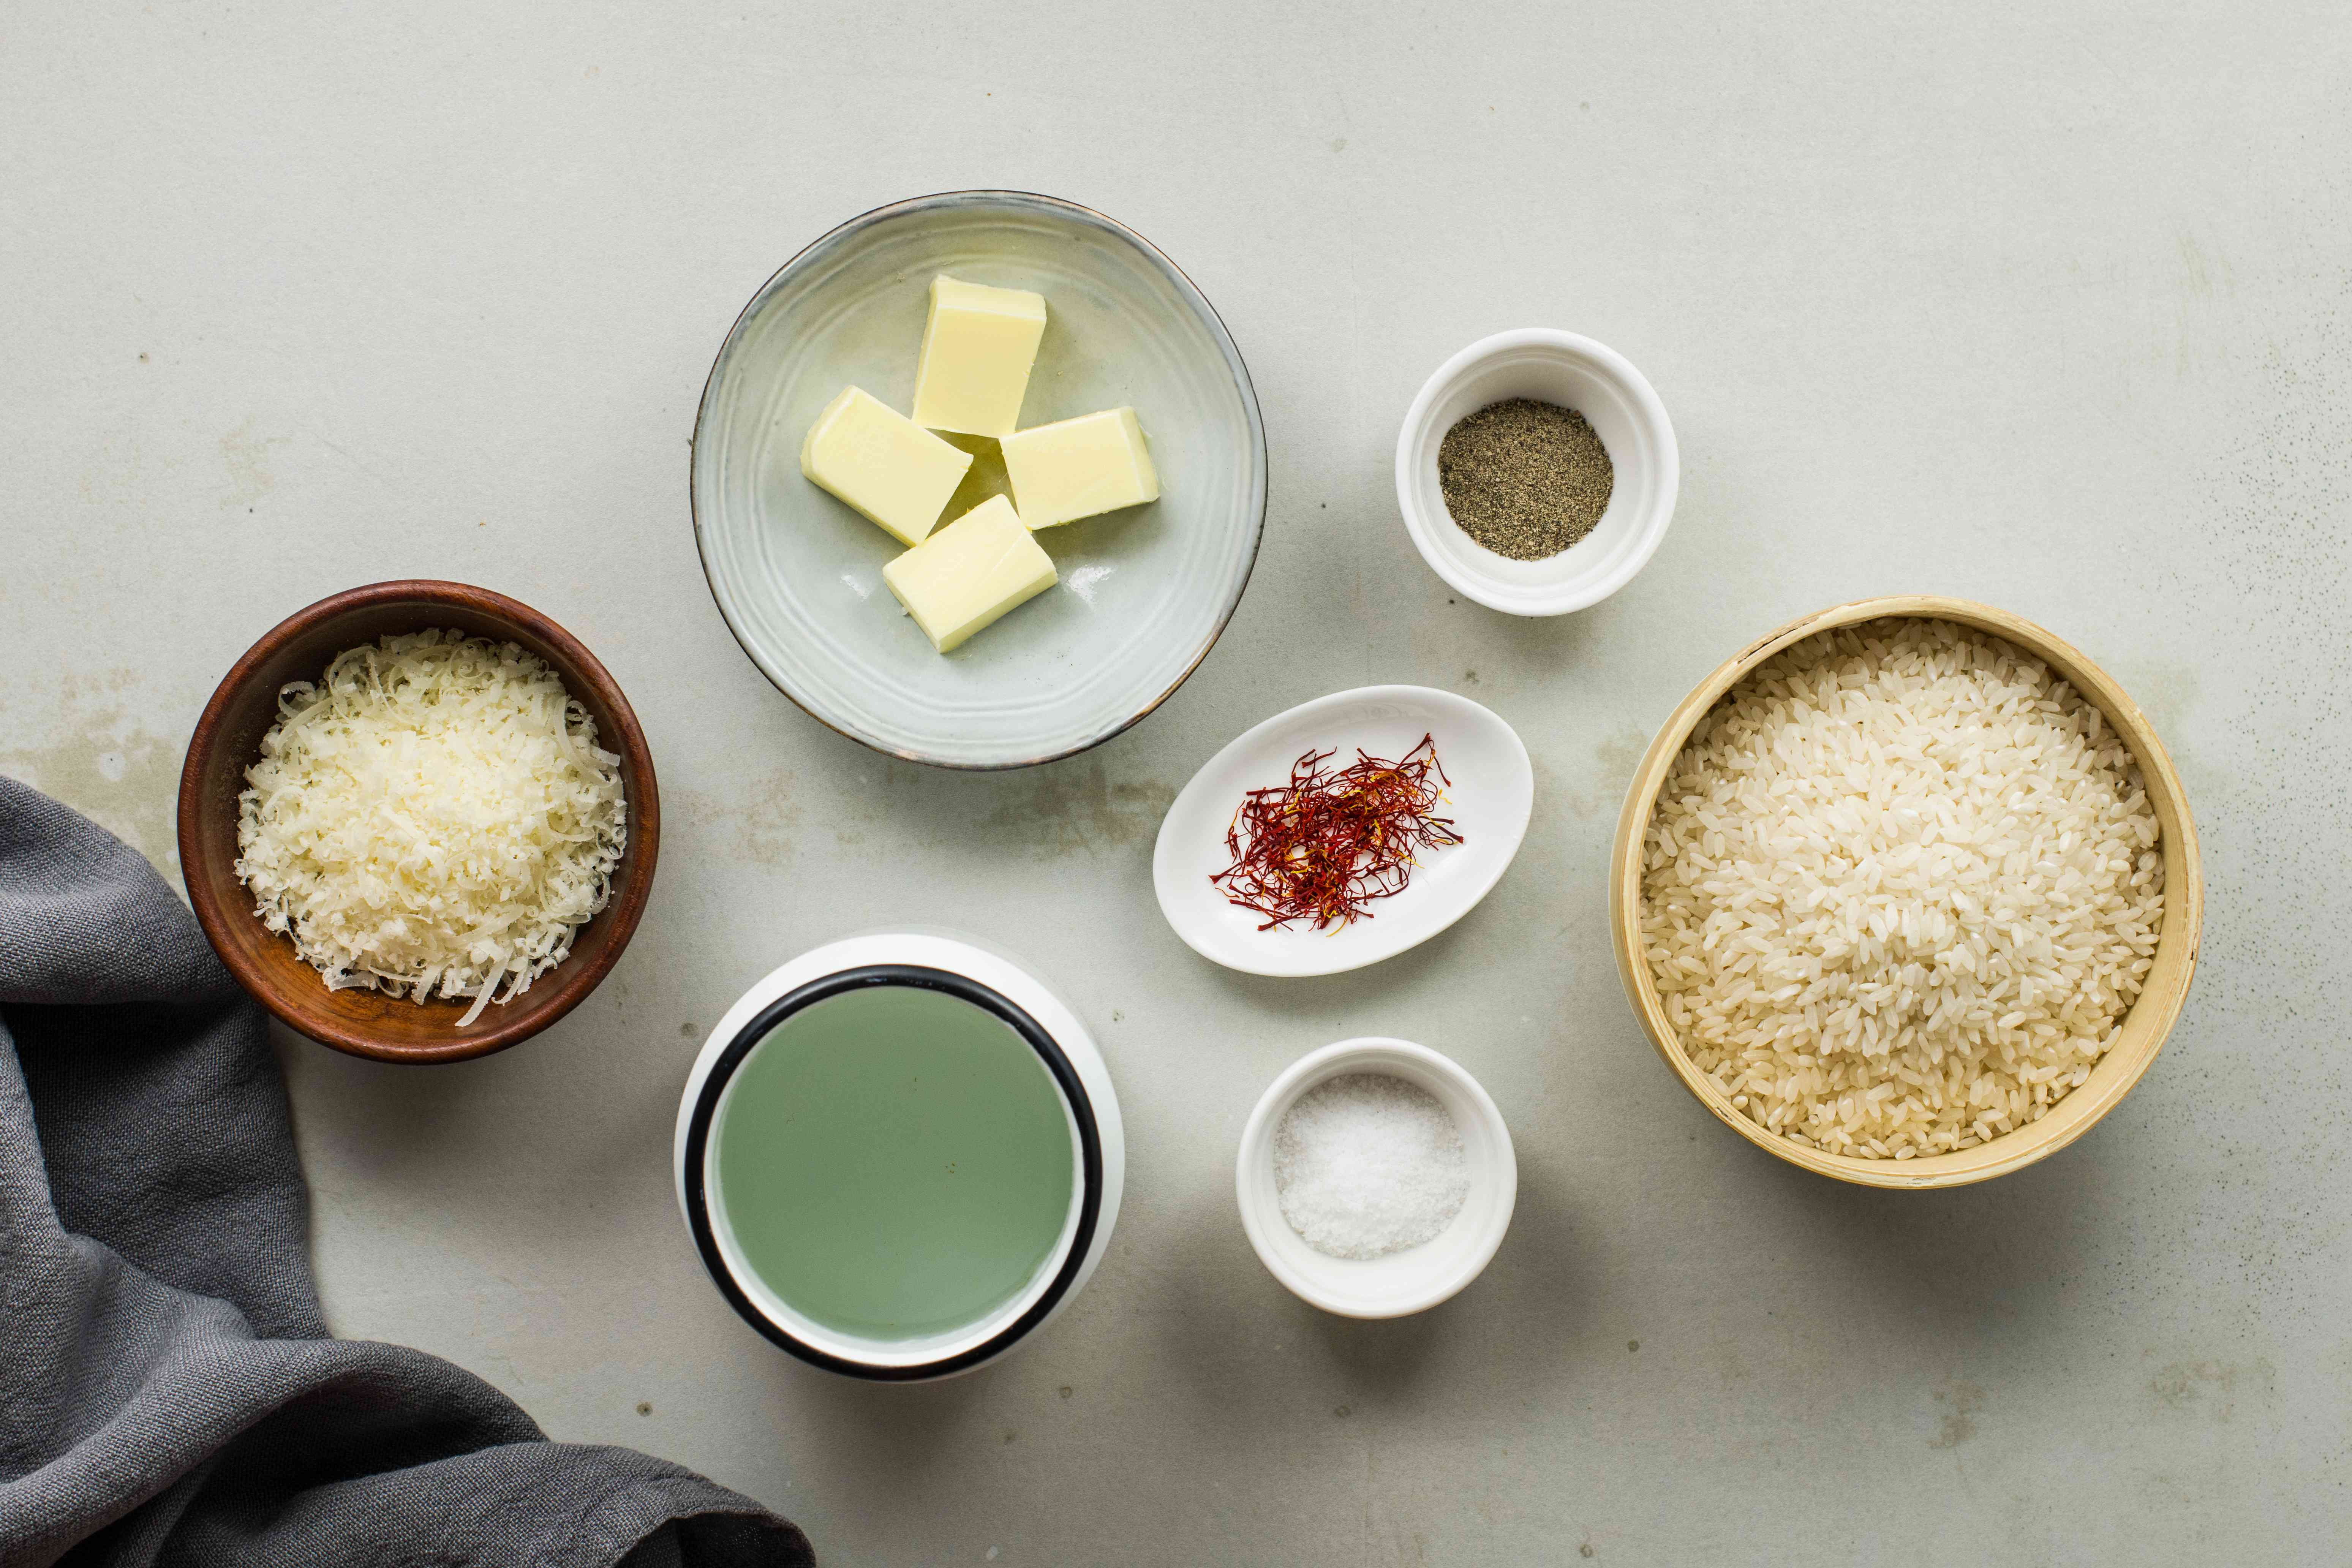 Ingredients for rice